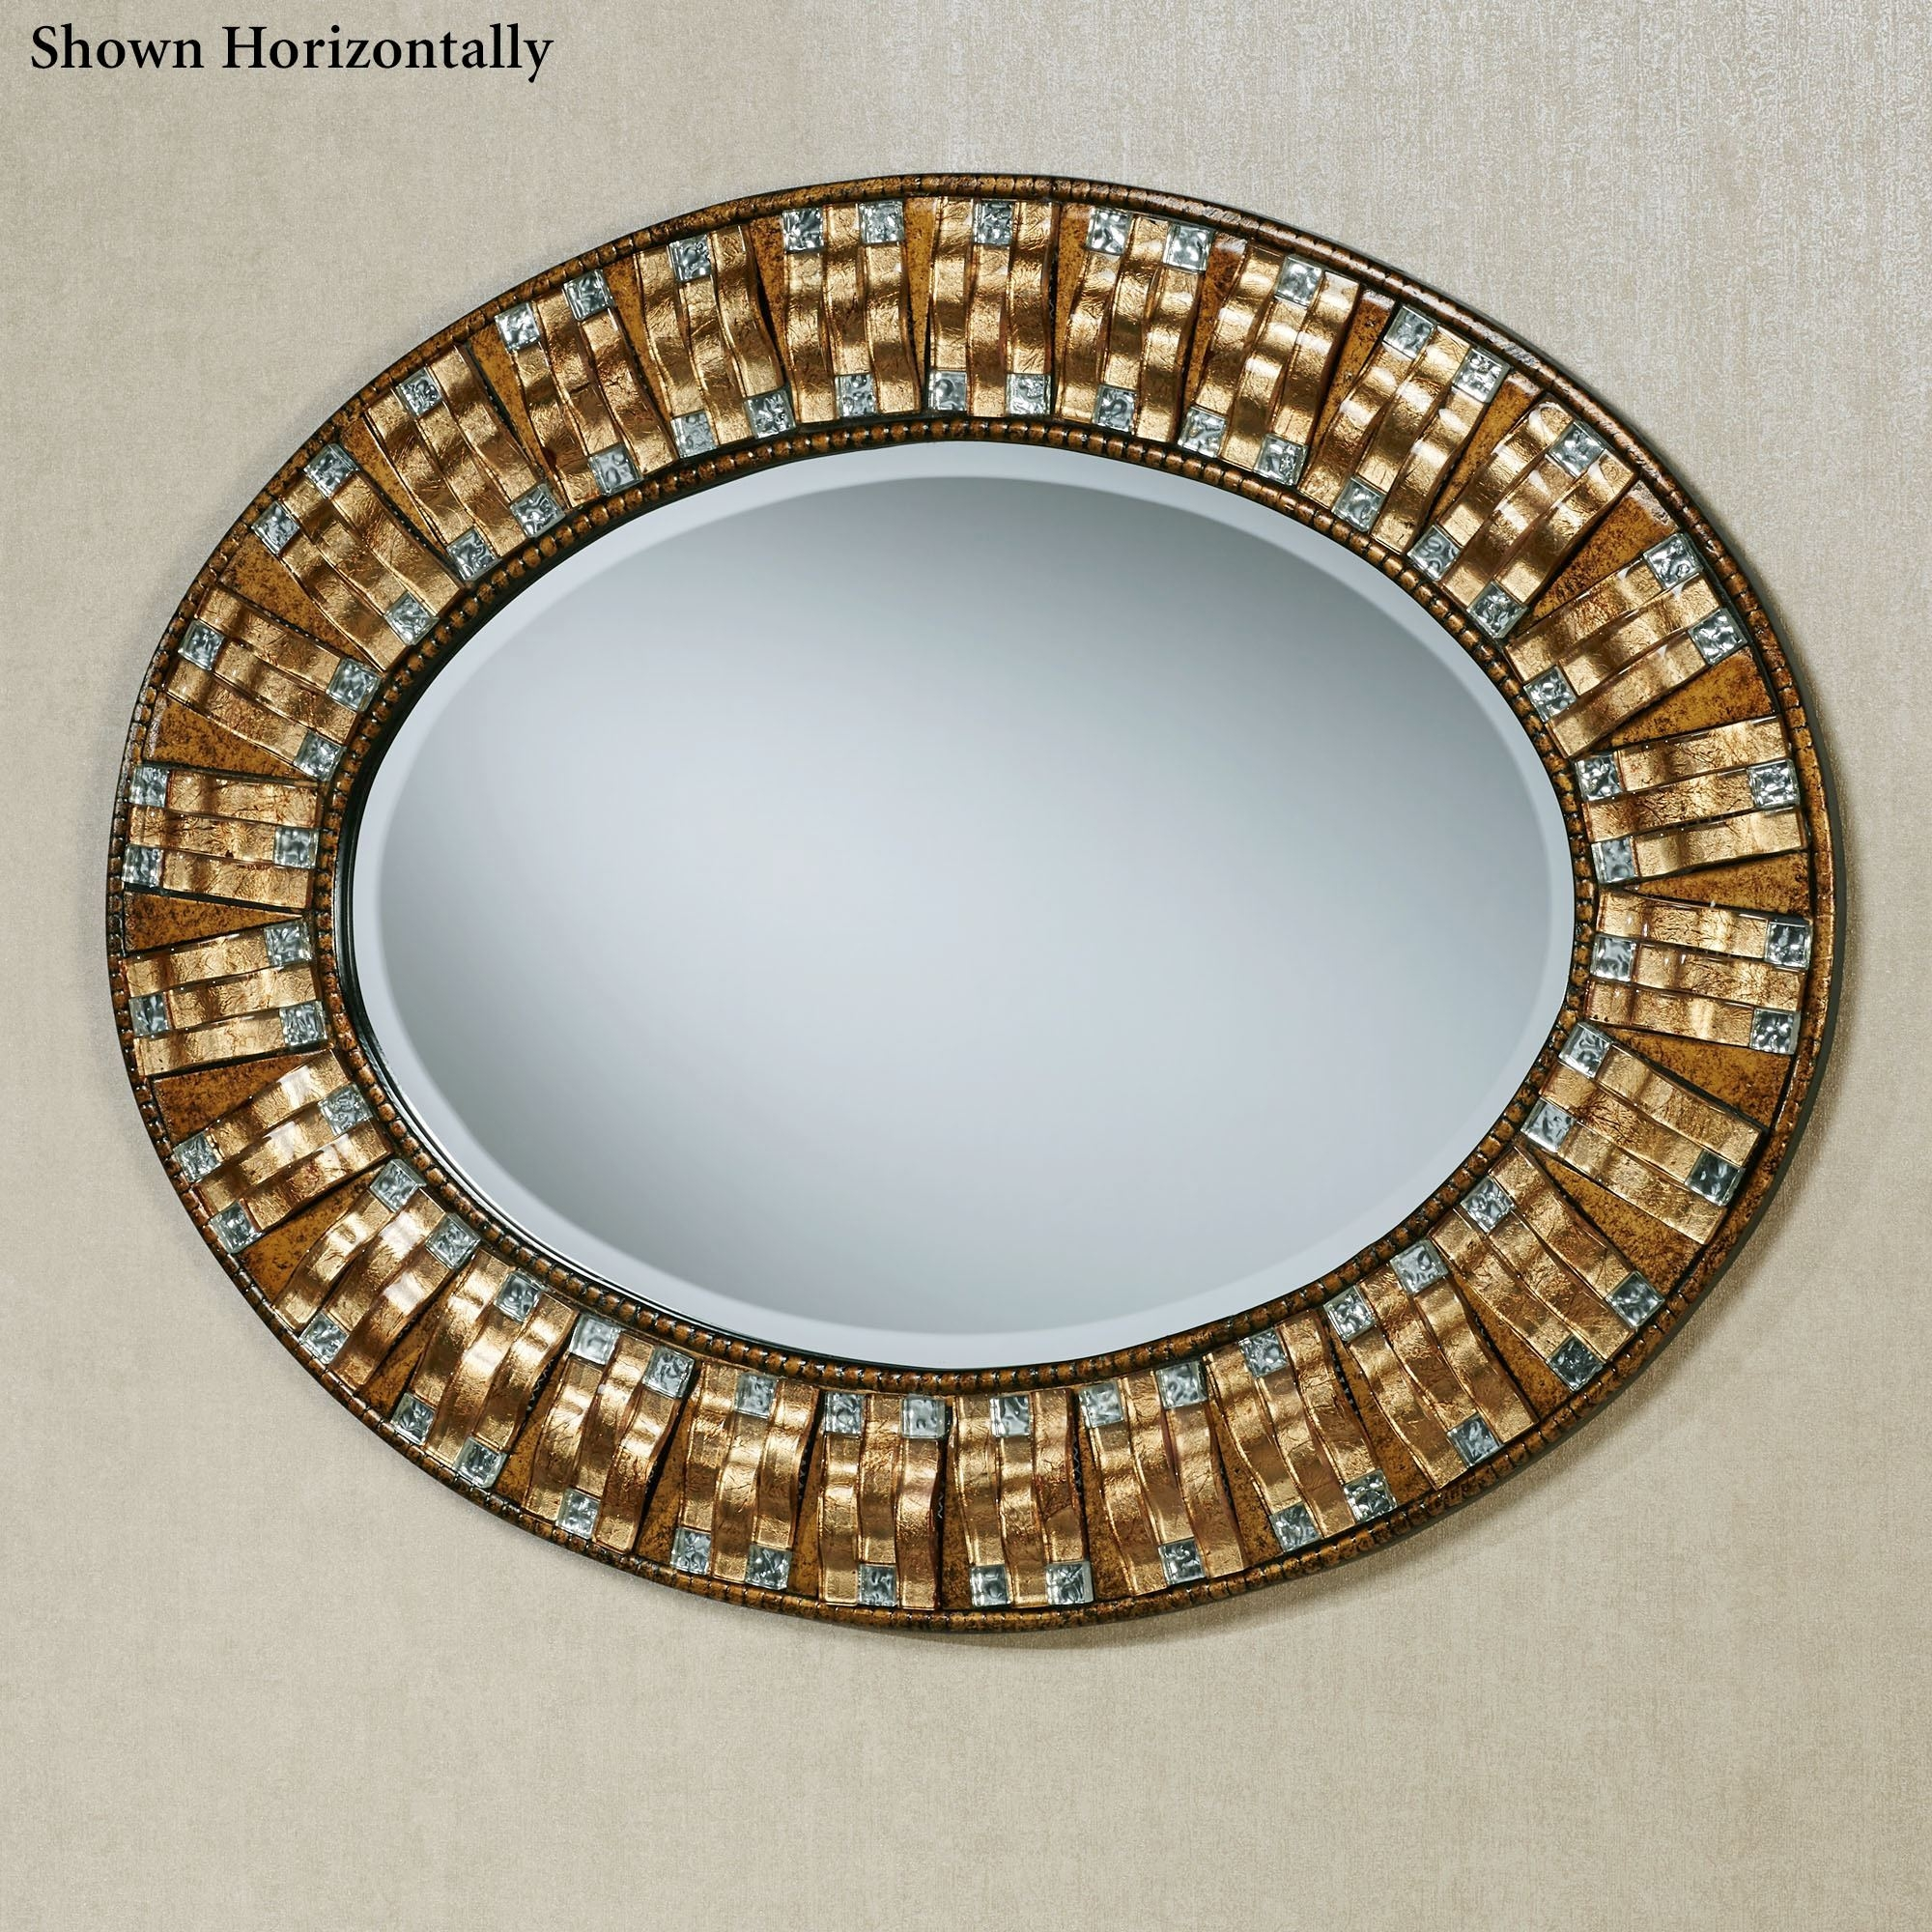 Maybelle Mosaic Oval Wall Mirror Pertaining To Mosaic Wall Mirror (View 11 of 15)